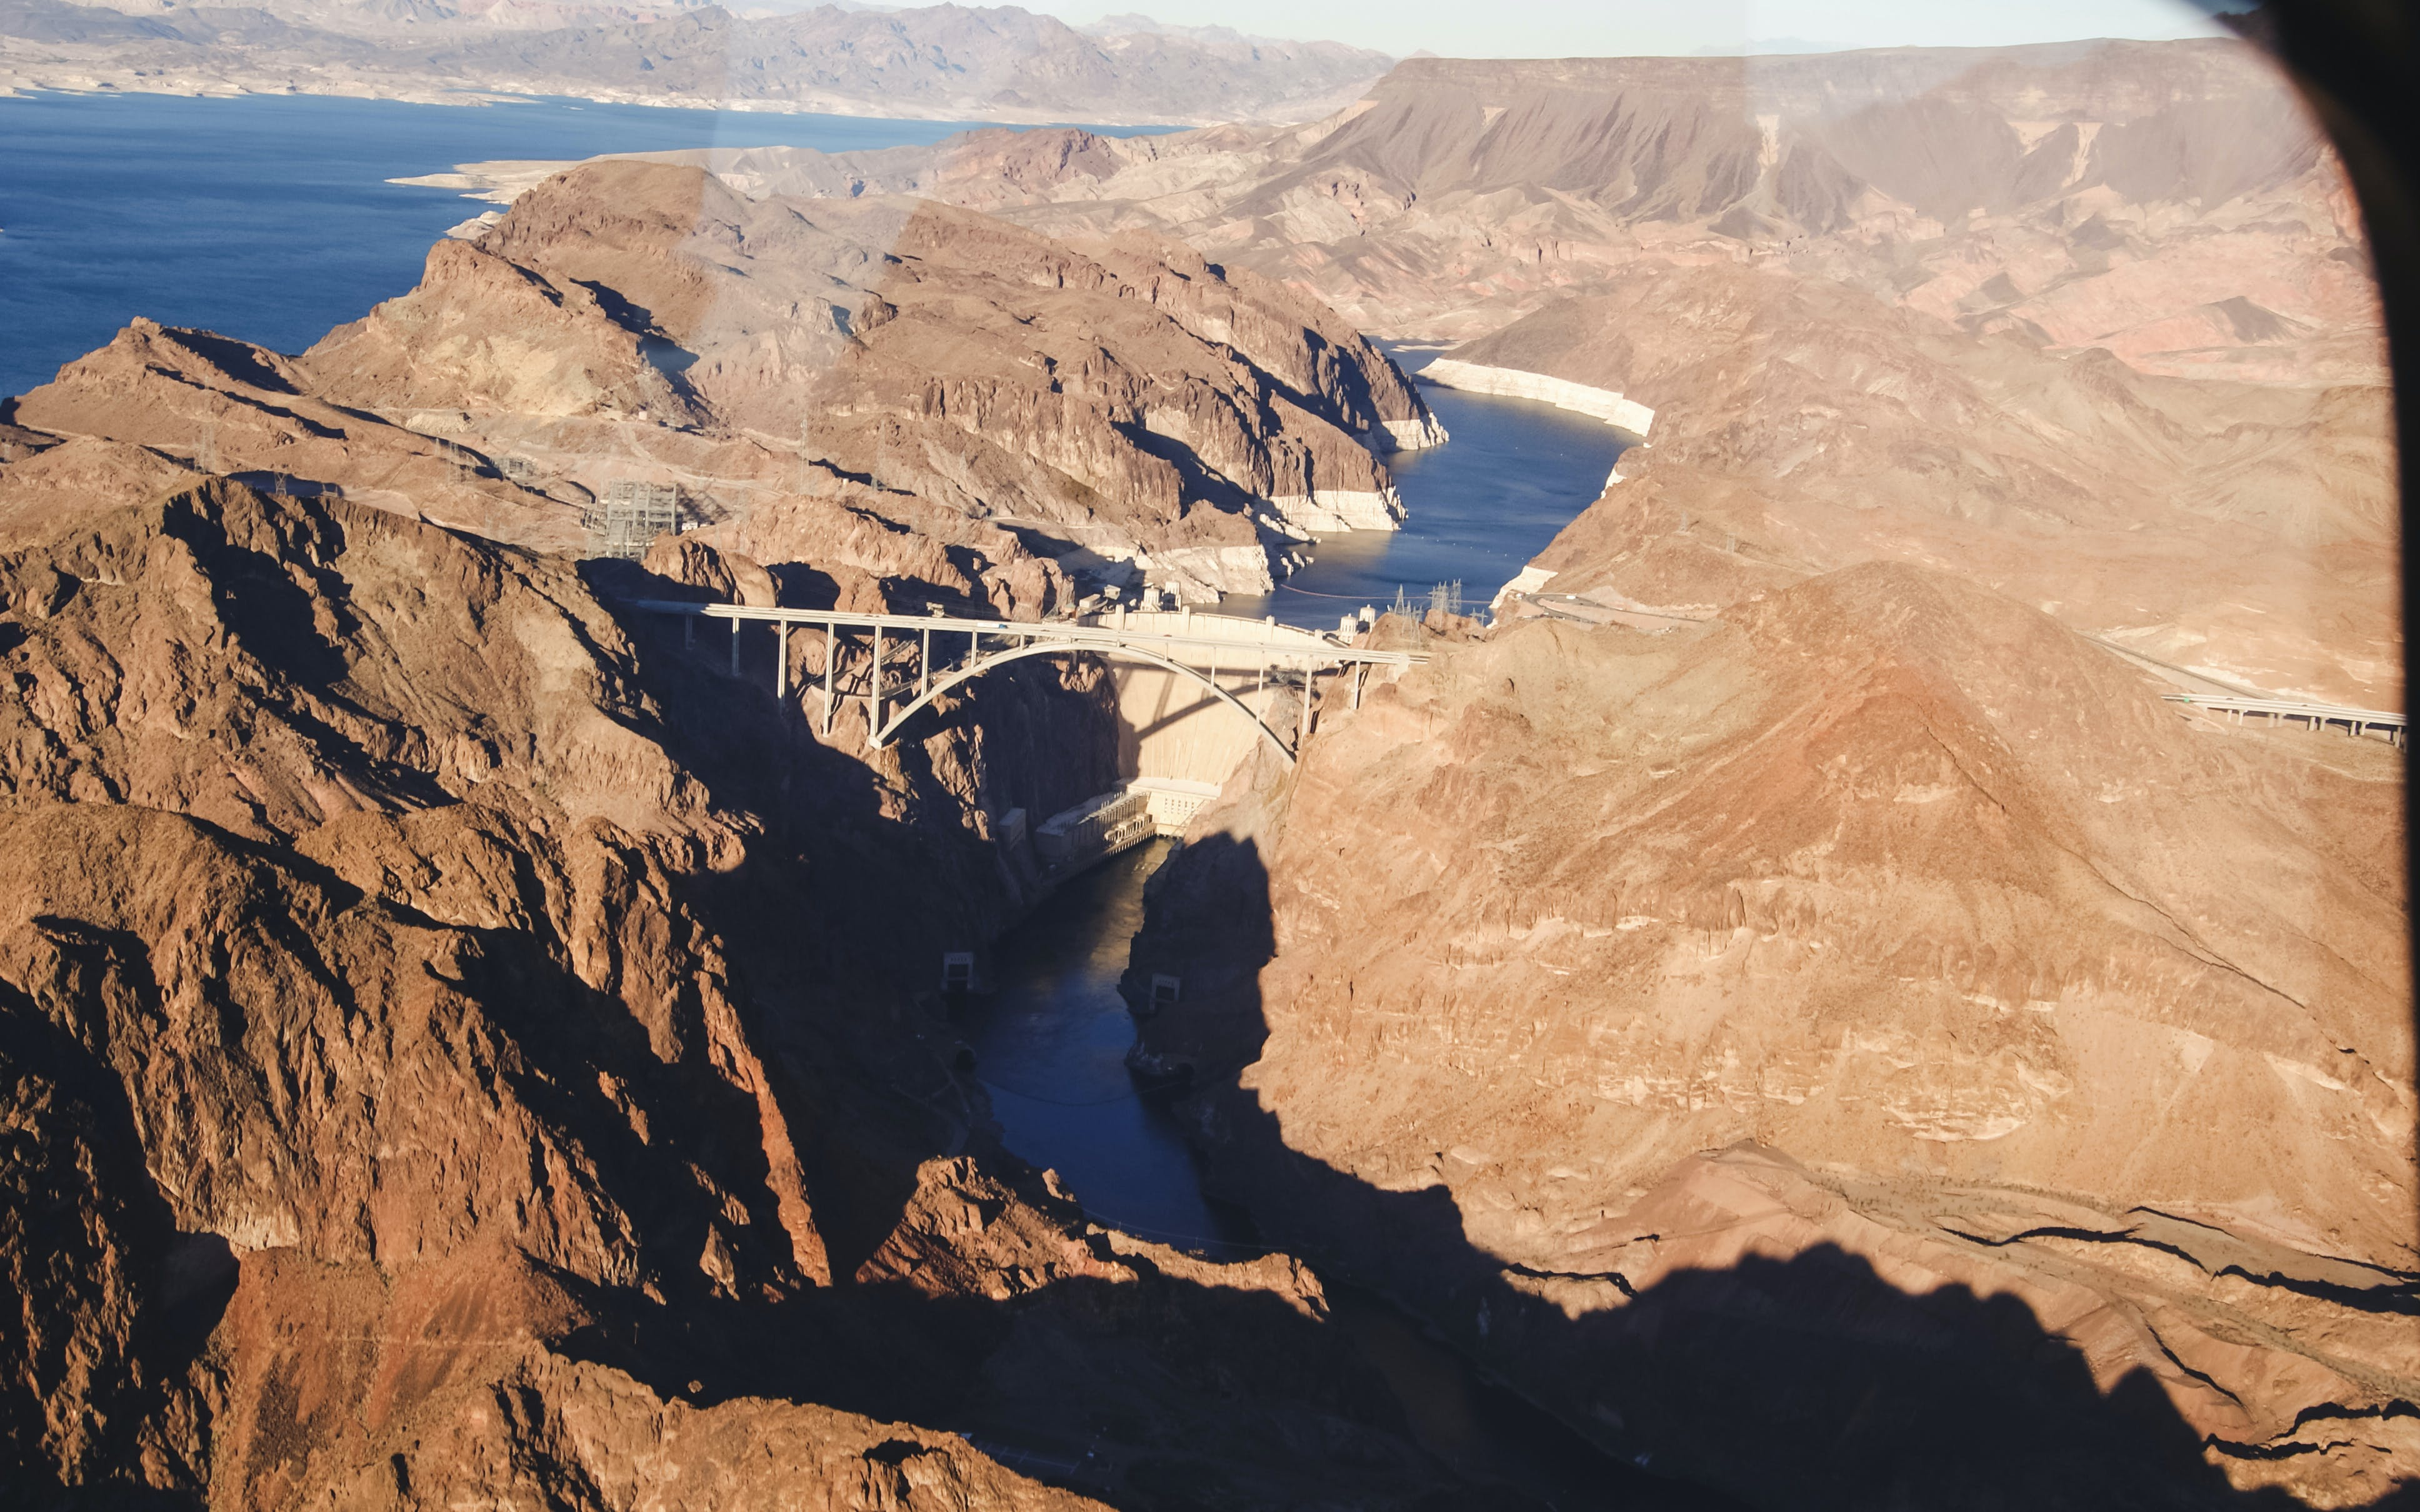 vegas to gc west rim helicopter tour with river cruise and flight over lv strip-5